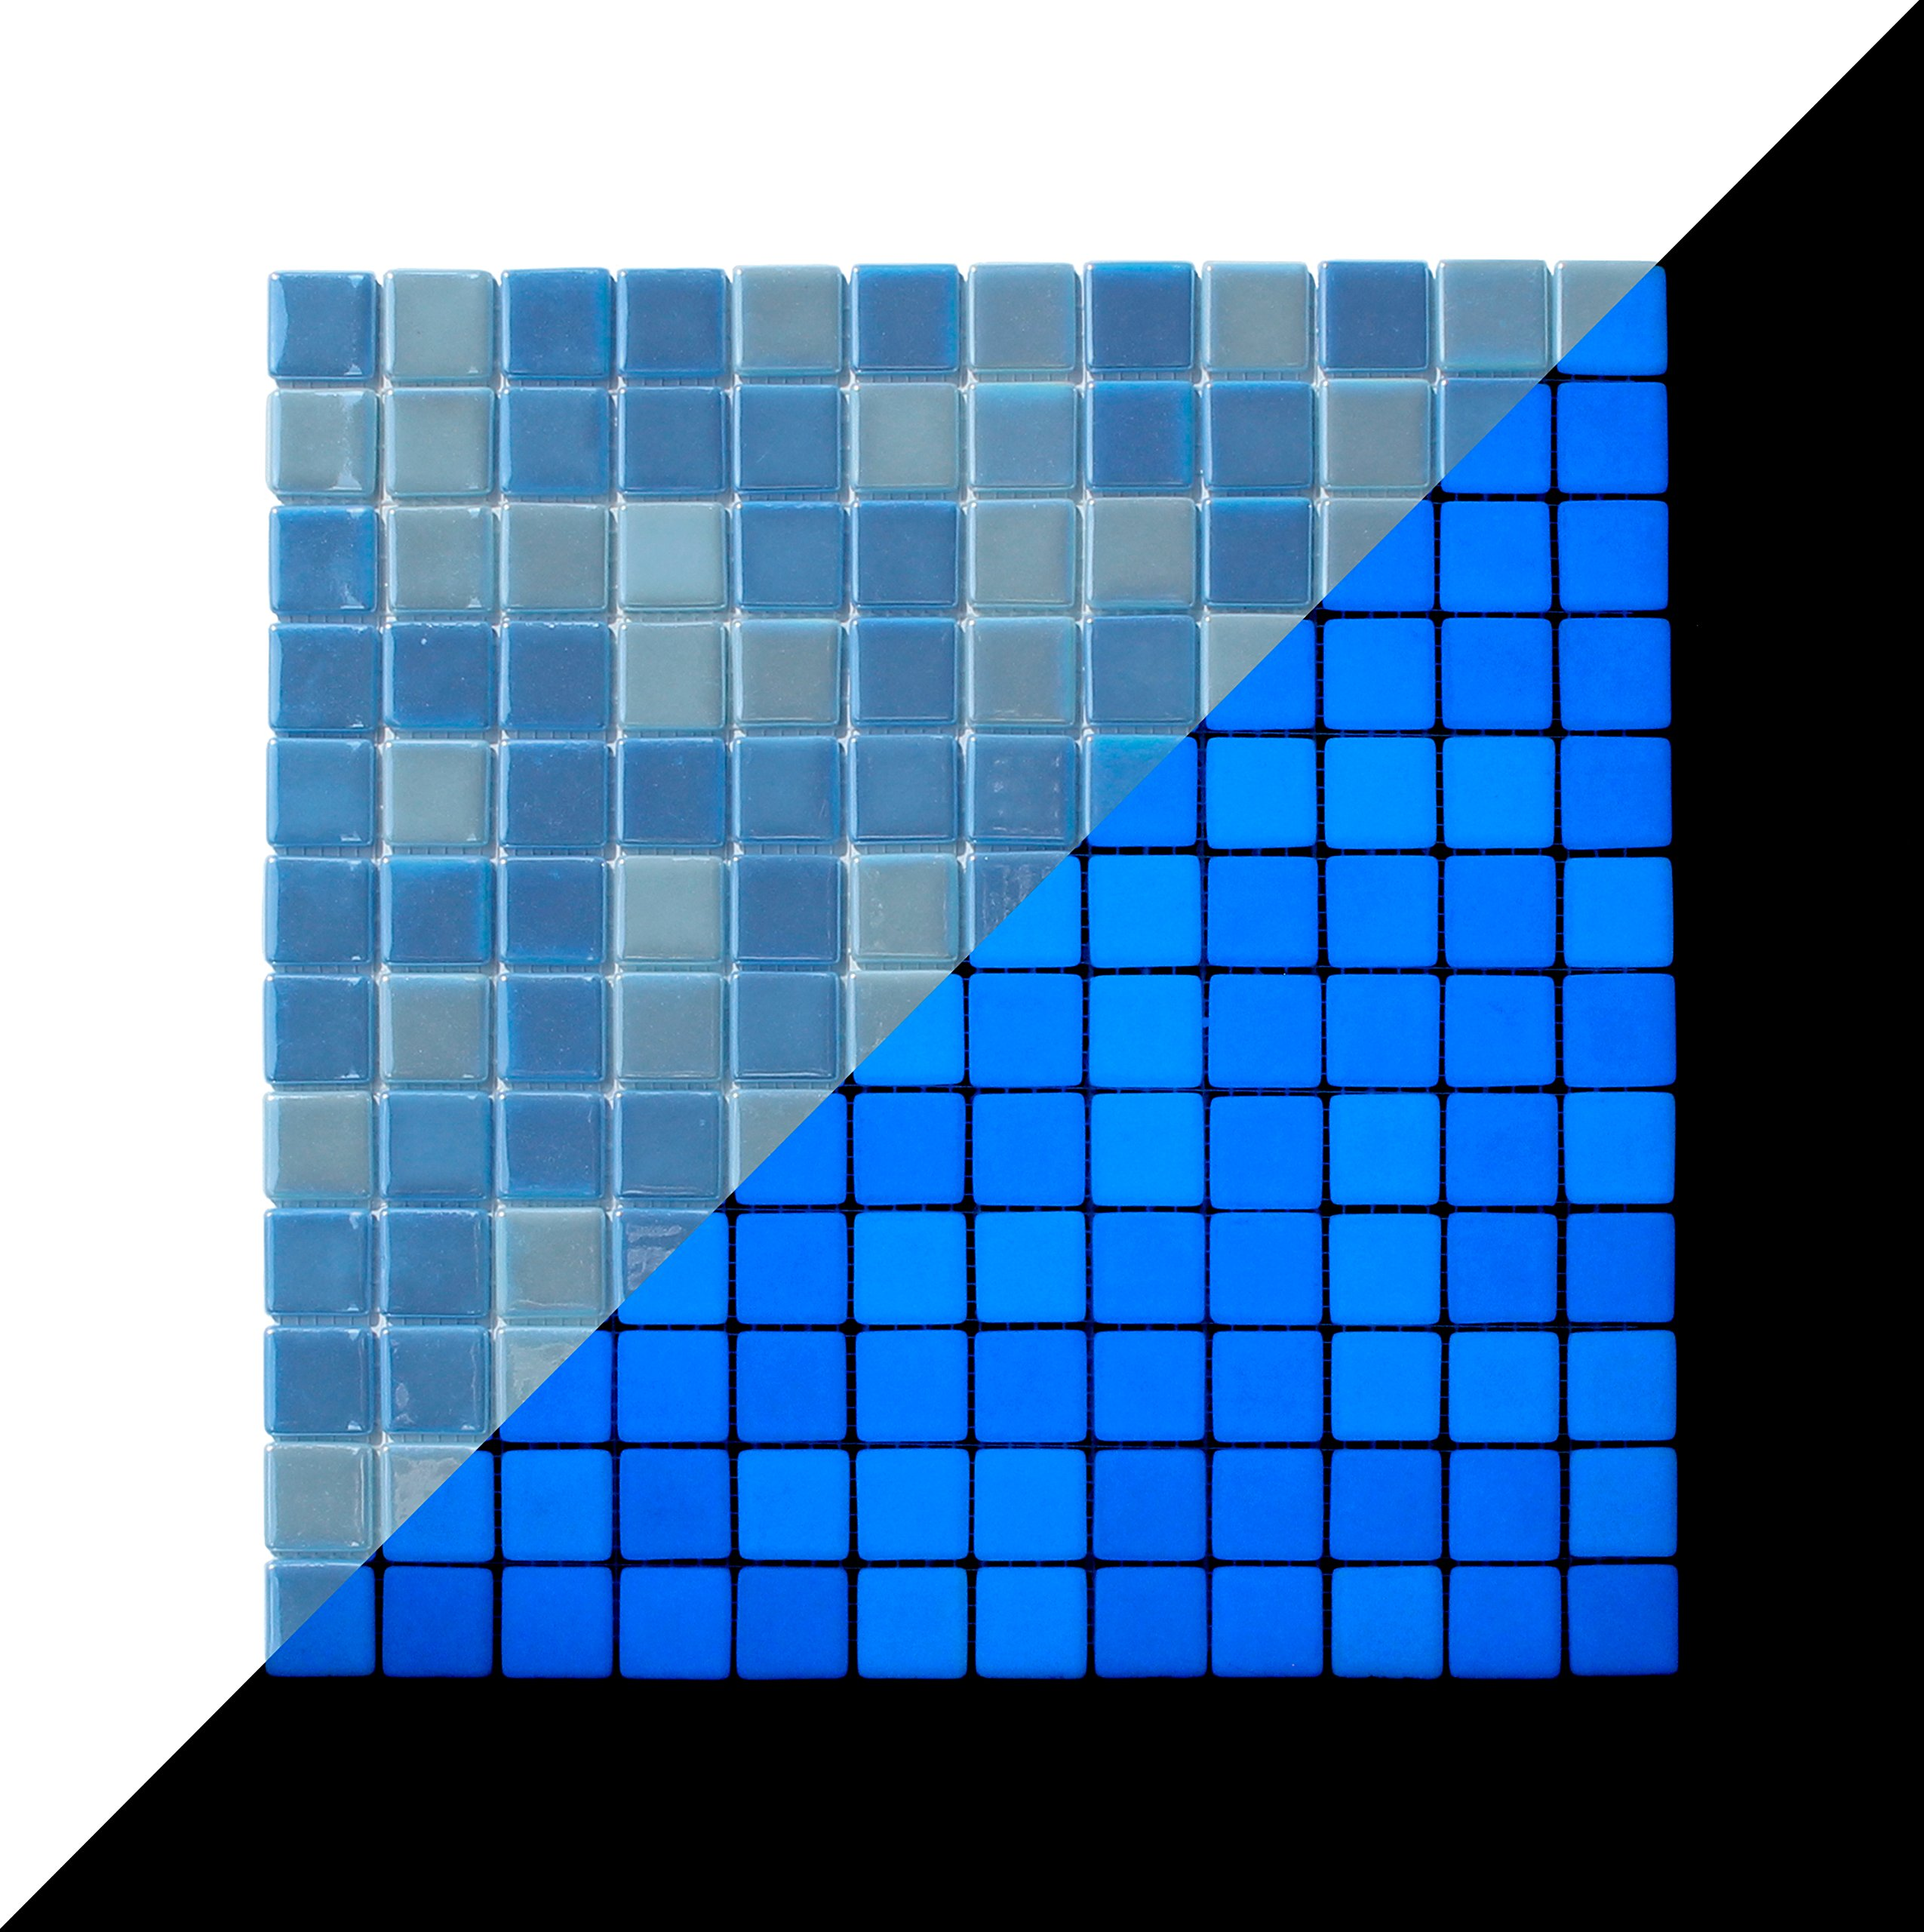 illumino Opus One Ocean Blue Glow-in-The-Dark Glass Tile / 1 Sheet 12.3'' x 12.3'' by illumino